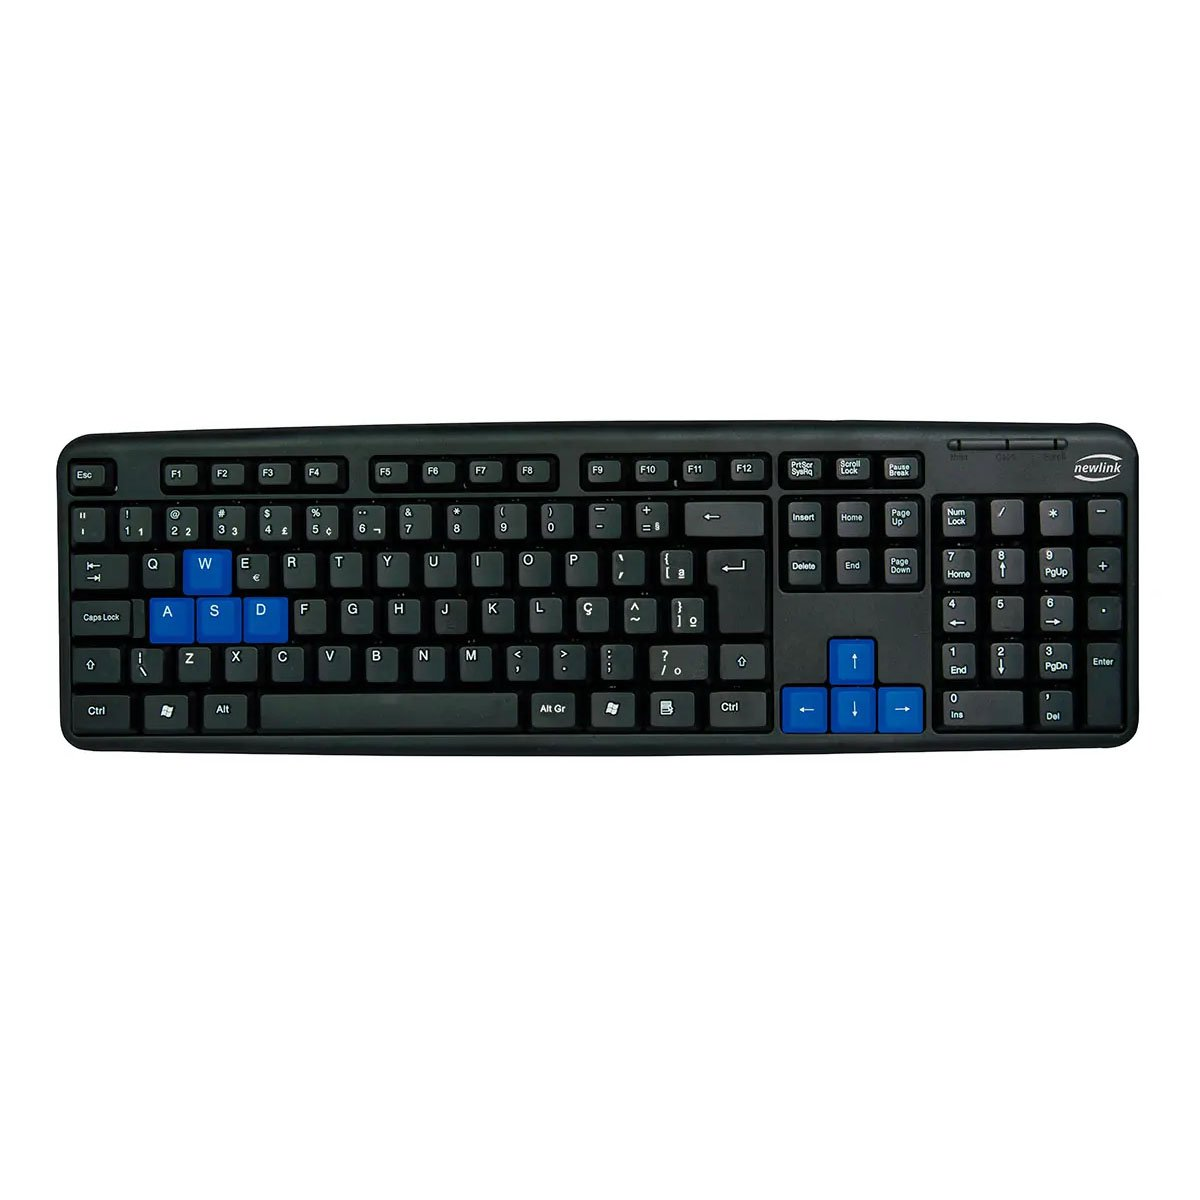 teclado usb newlink level tc 308 preto azul 50670 2000 202224 1